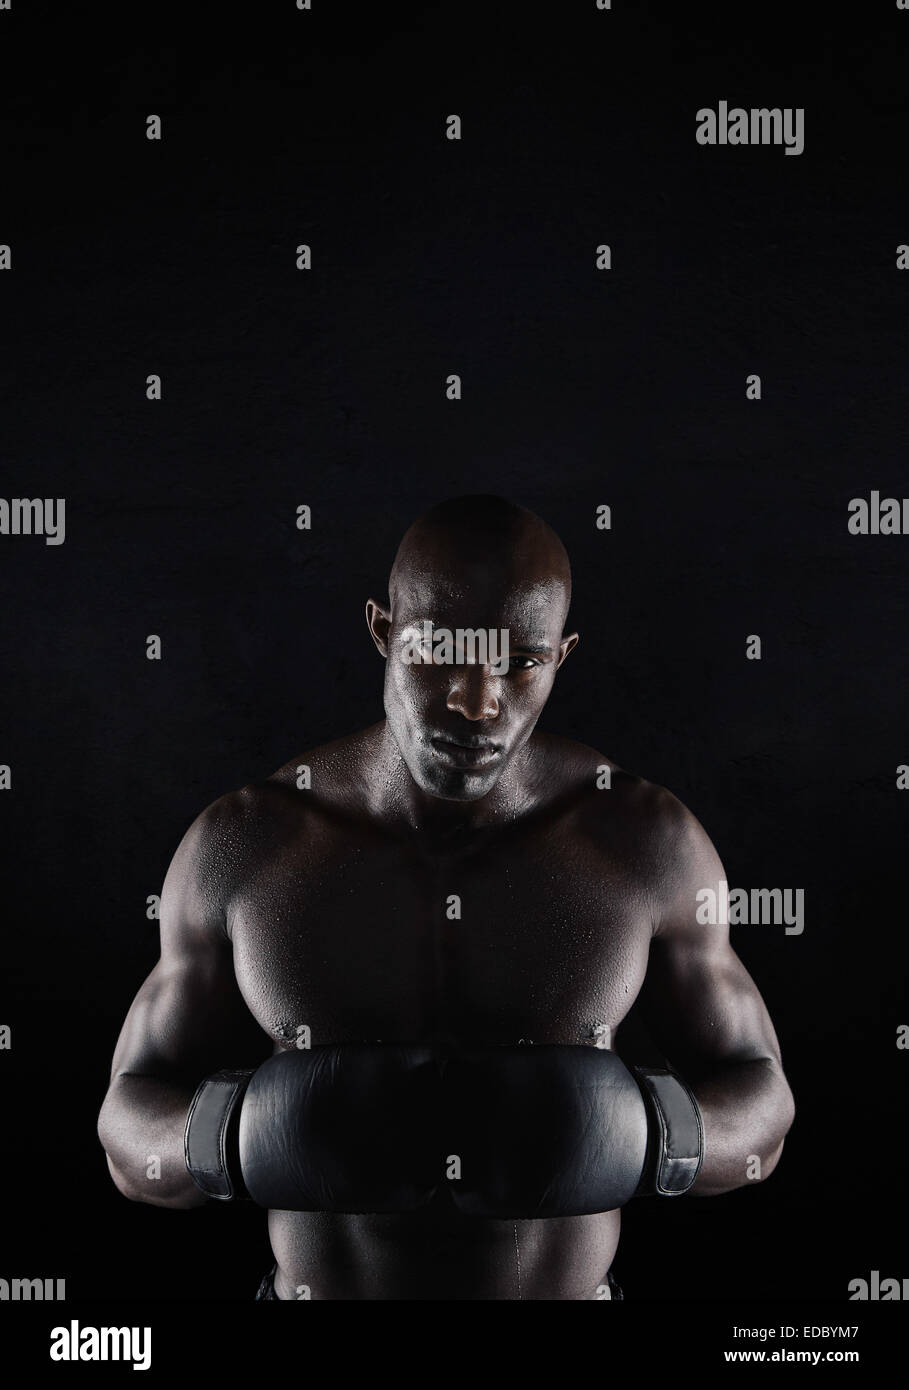 Portrait of professional male boxer against black background. Strong and muscular young man in boxing gear. - Stock Image